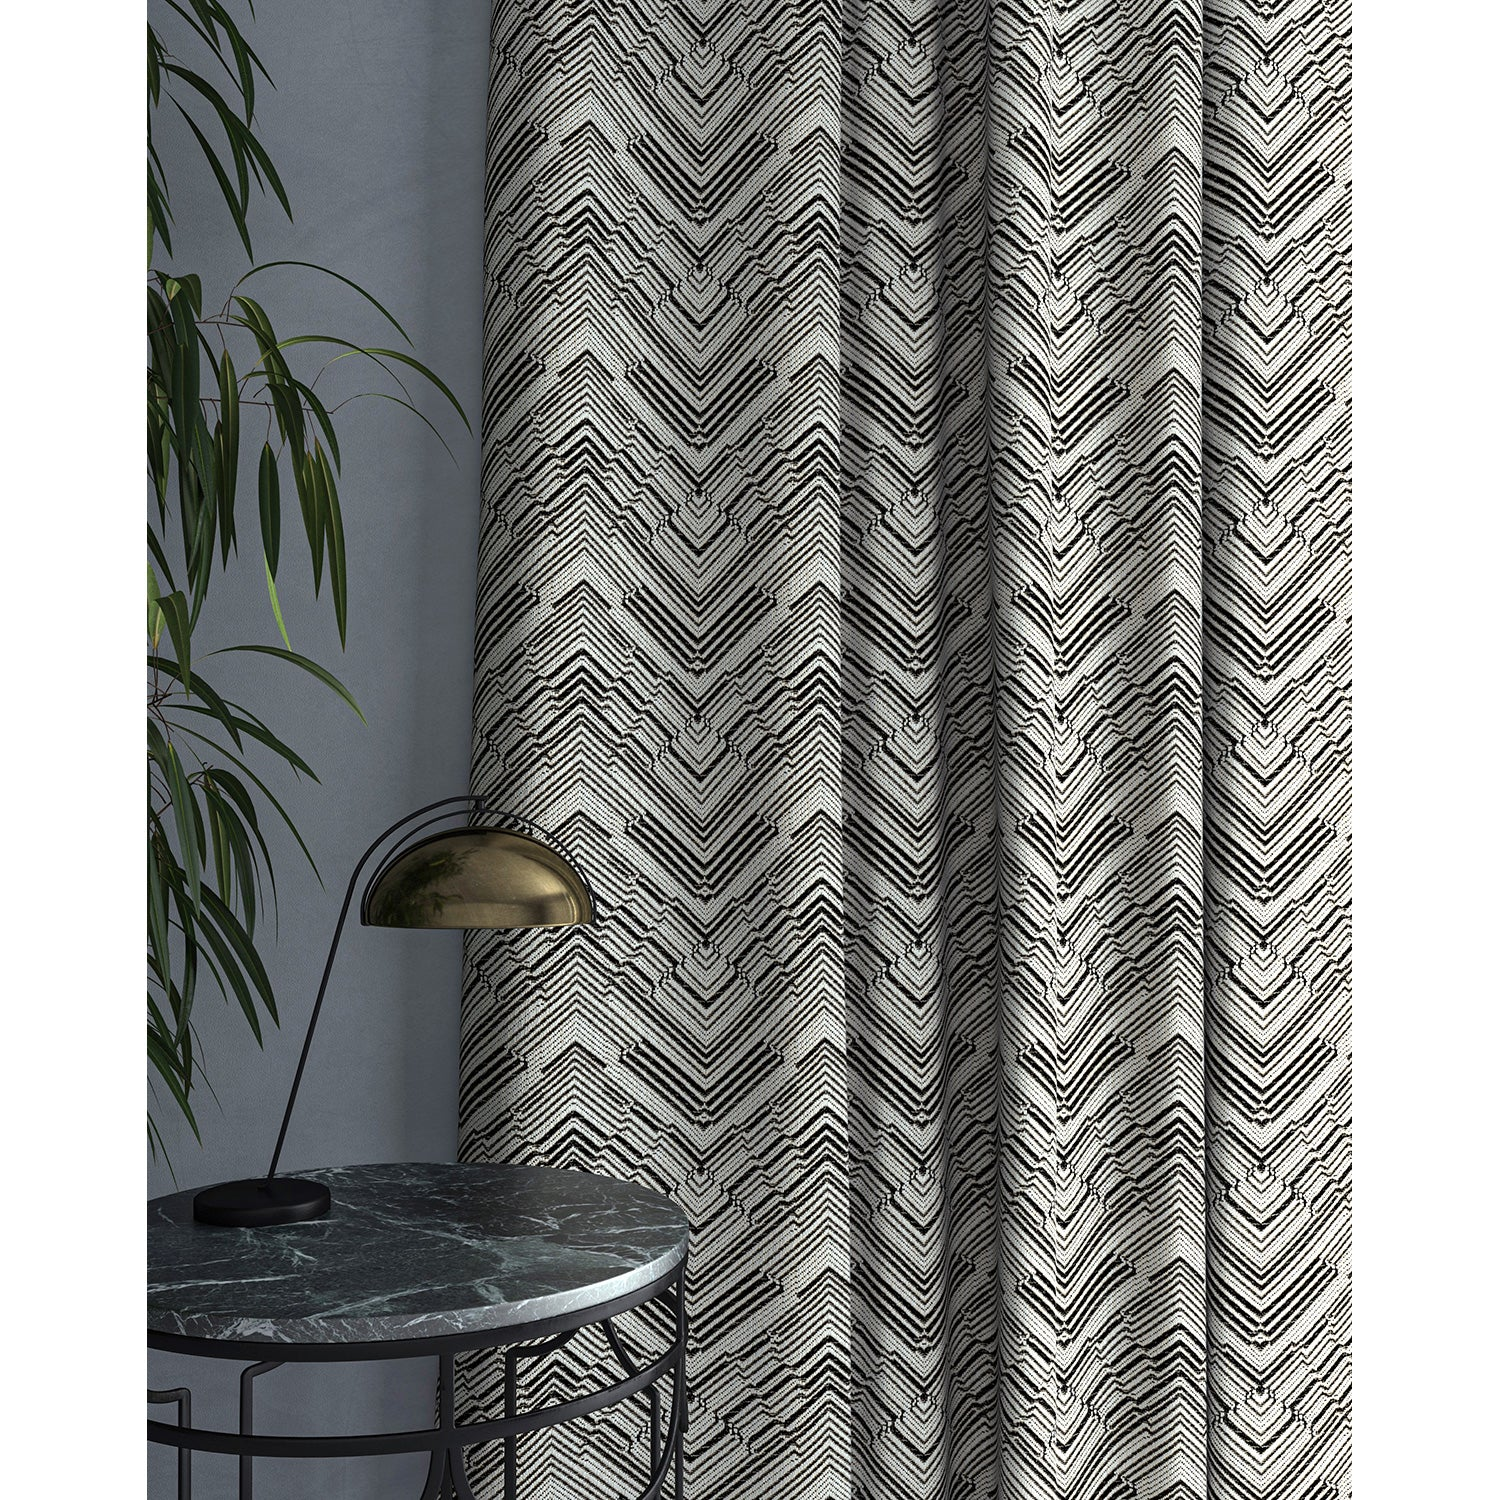 Curtain in a stain resistant grey herringbone weave fabric